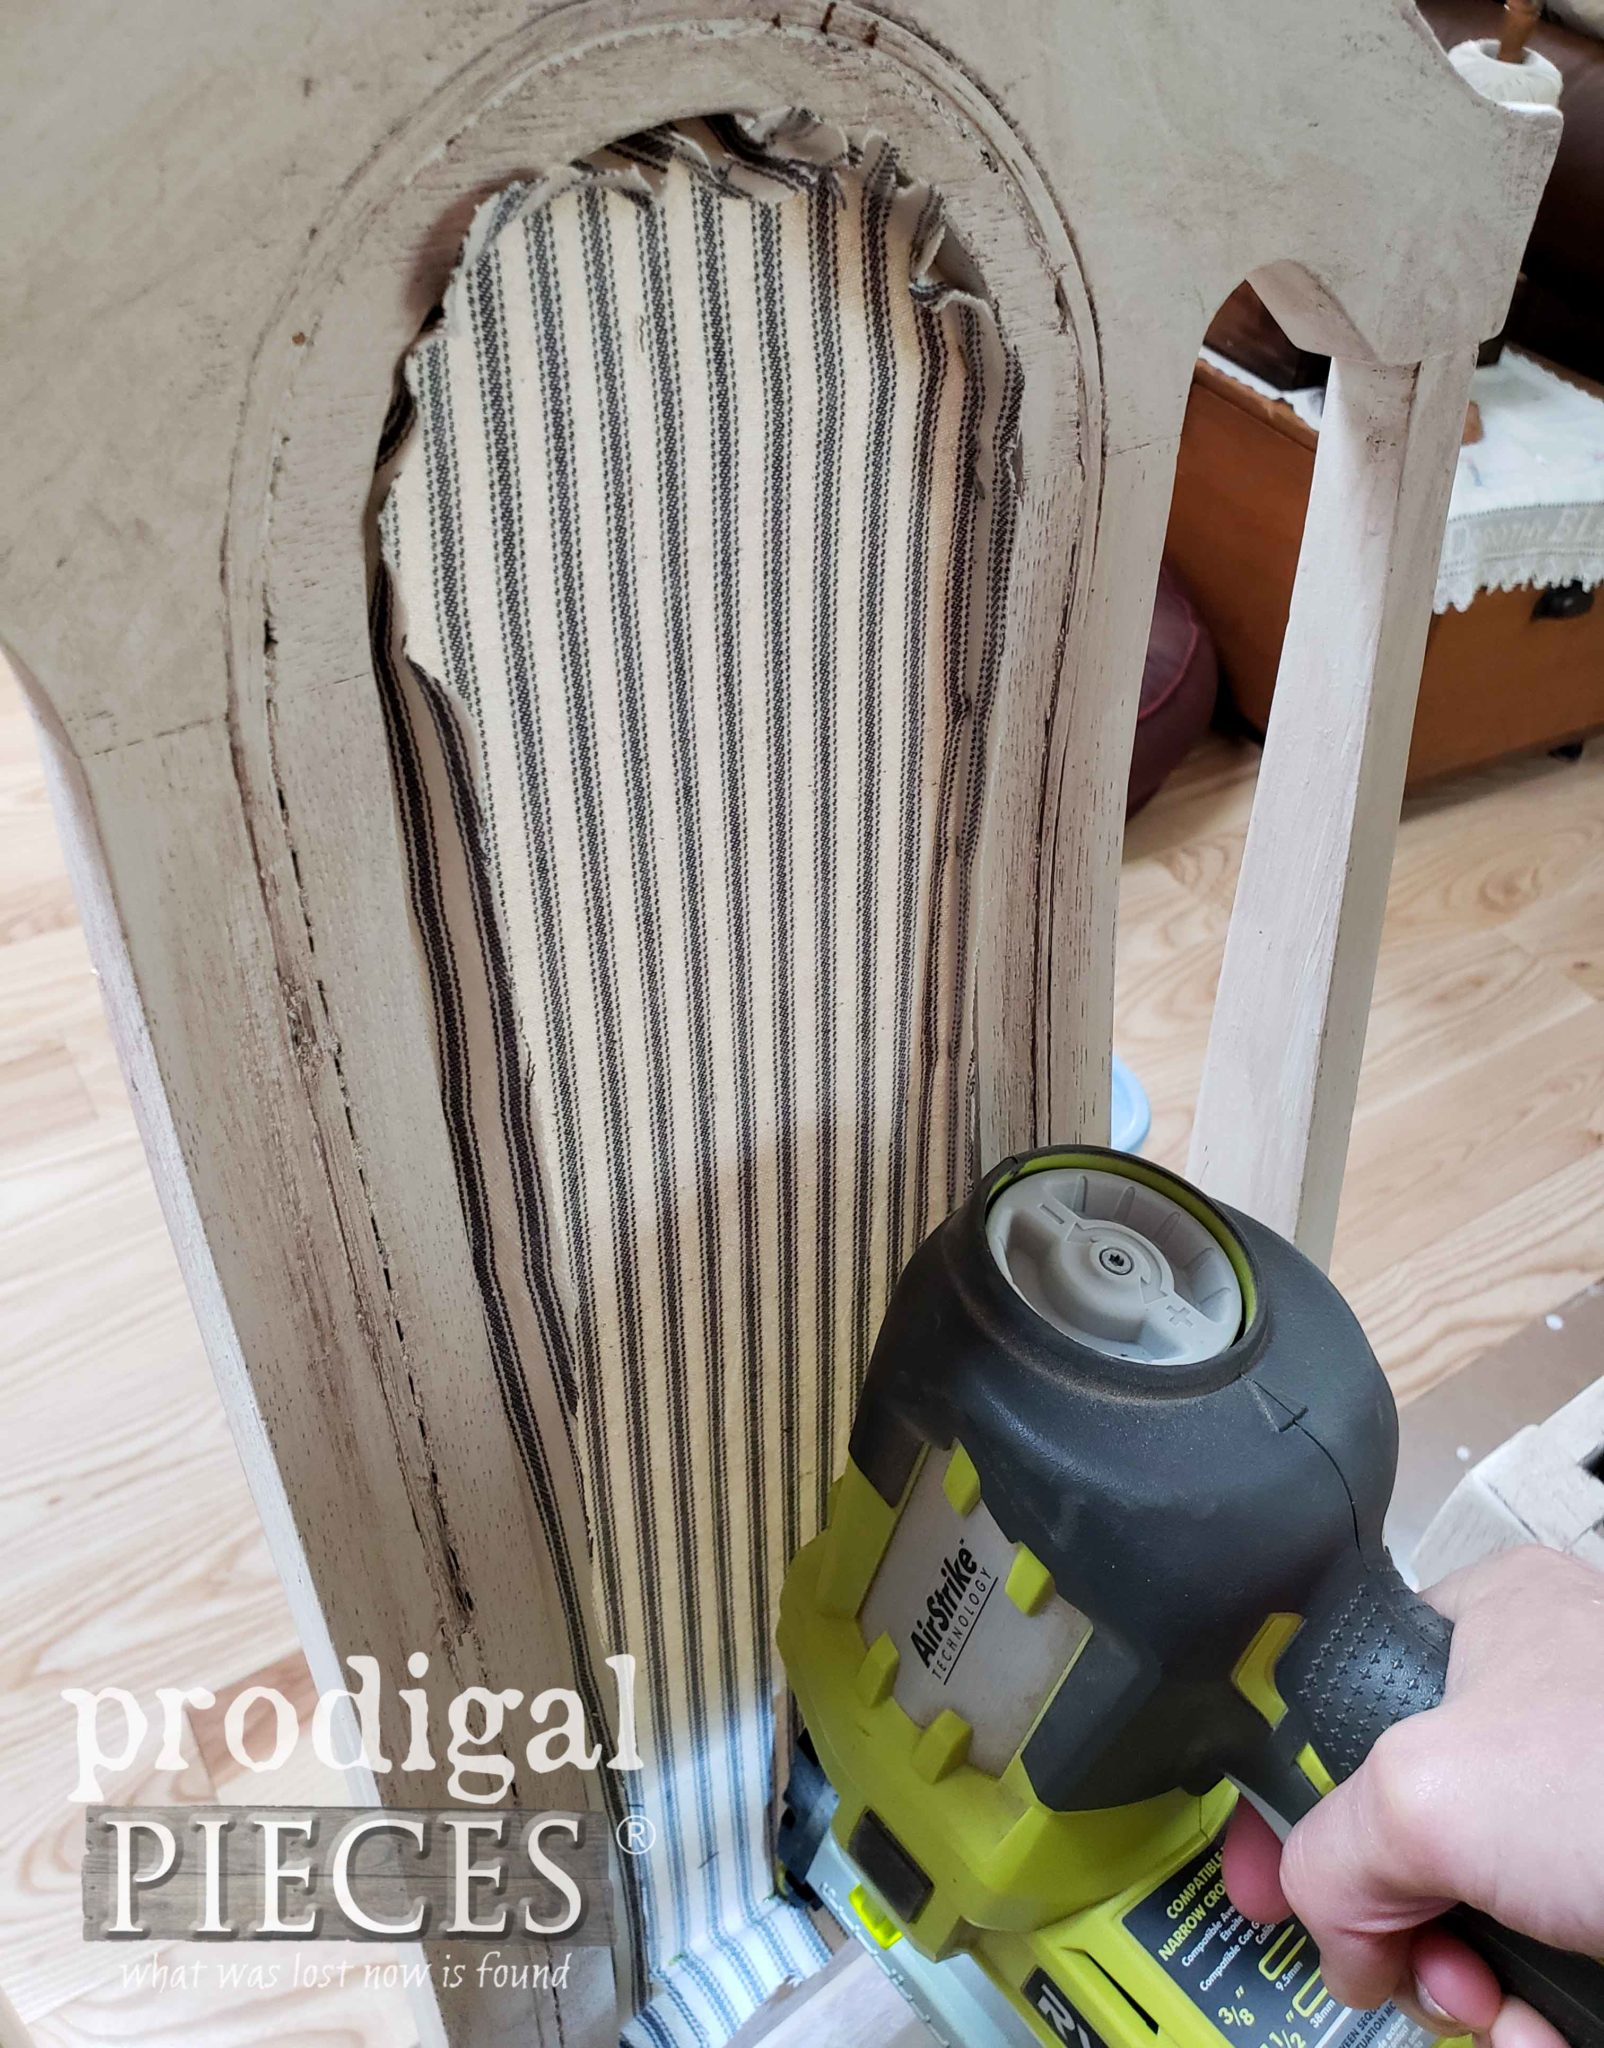 Adding Ticking Stripe Upholstery to Grain Sack Antique Chairs with Ryobi Stapler by Larissa of Prodigal Pieces | prodigalpieces.com #prodigalpieces #diy #home #homedecor #furniture #tools